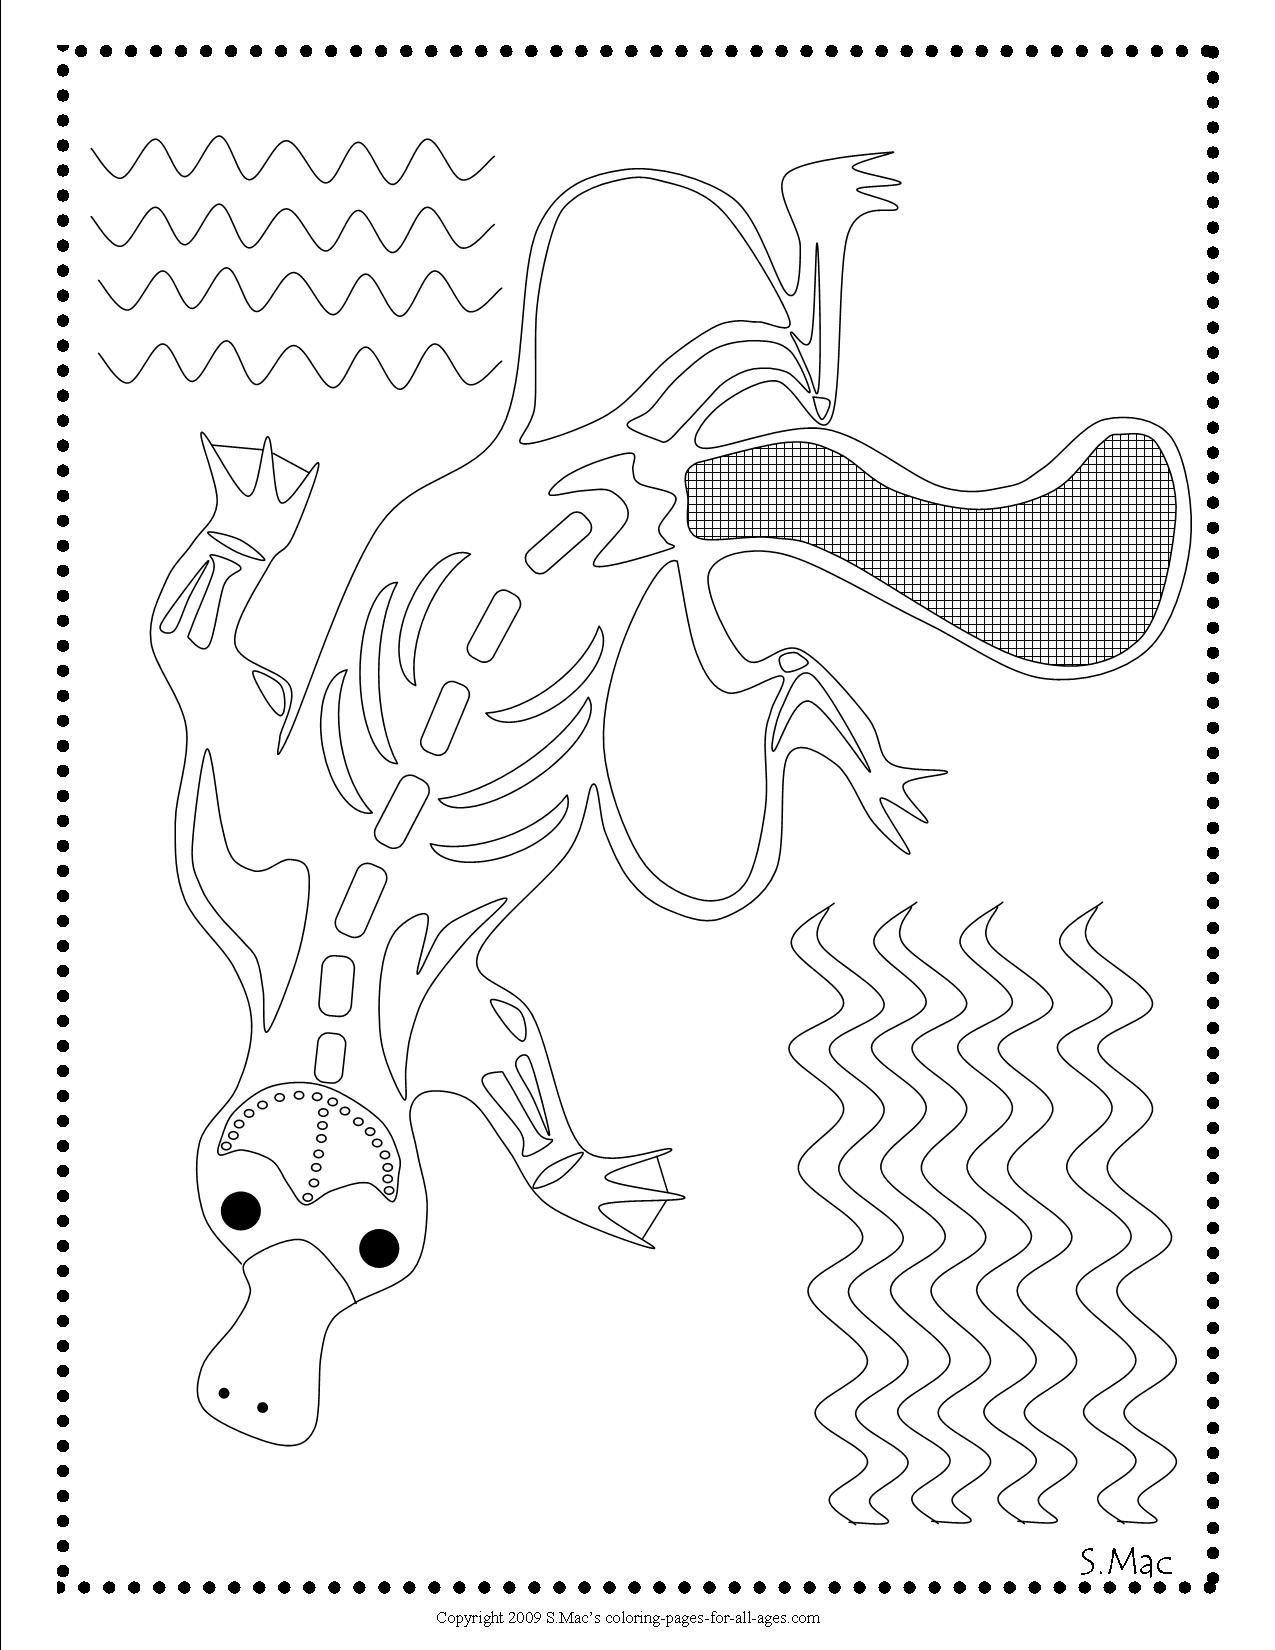 Find Inspiration in X-ray Art Coloring Pages X-ray Art